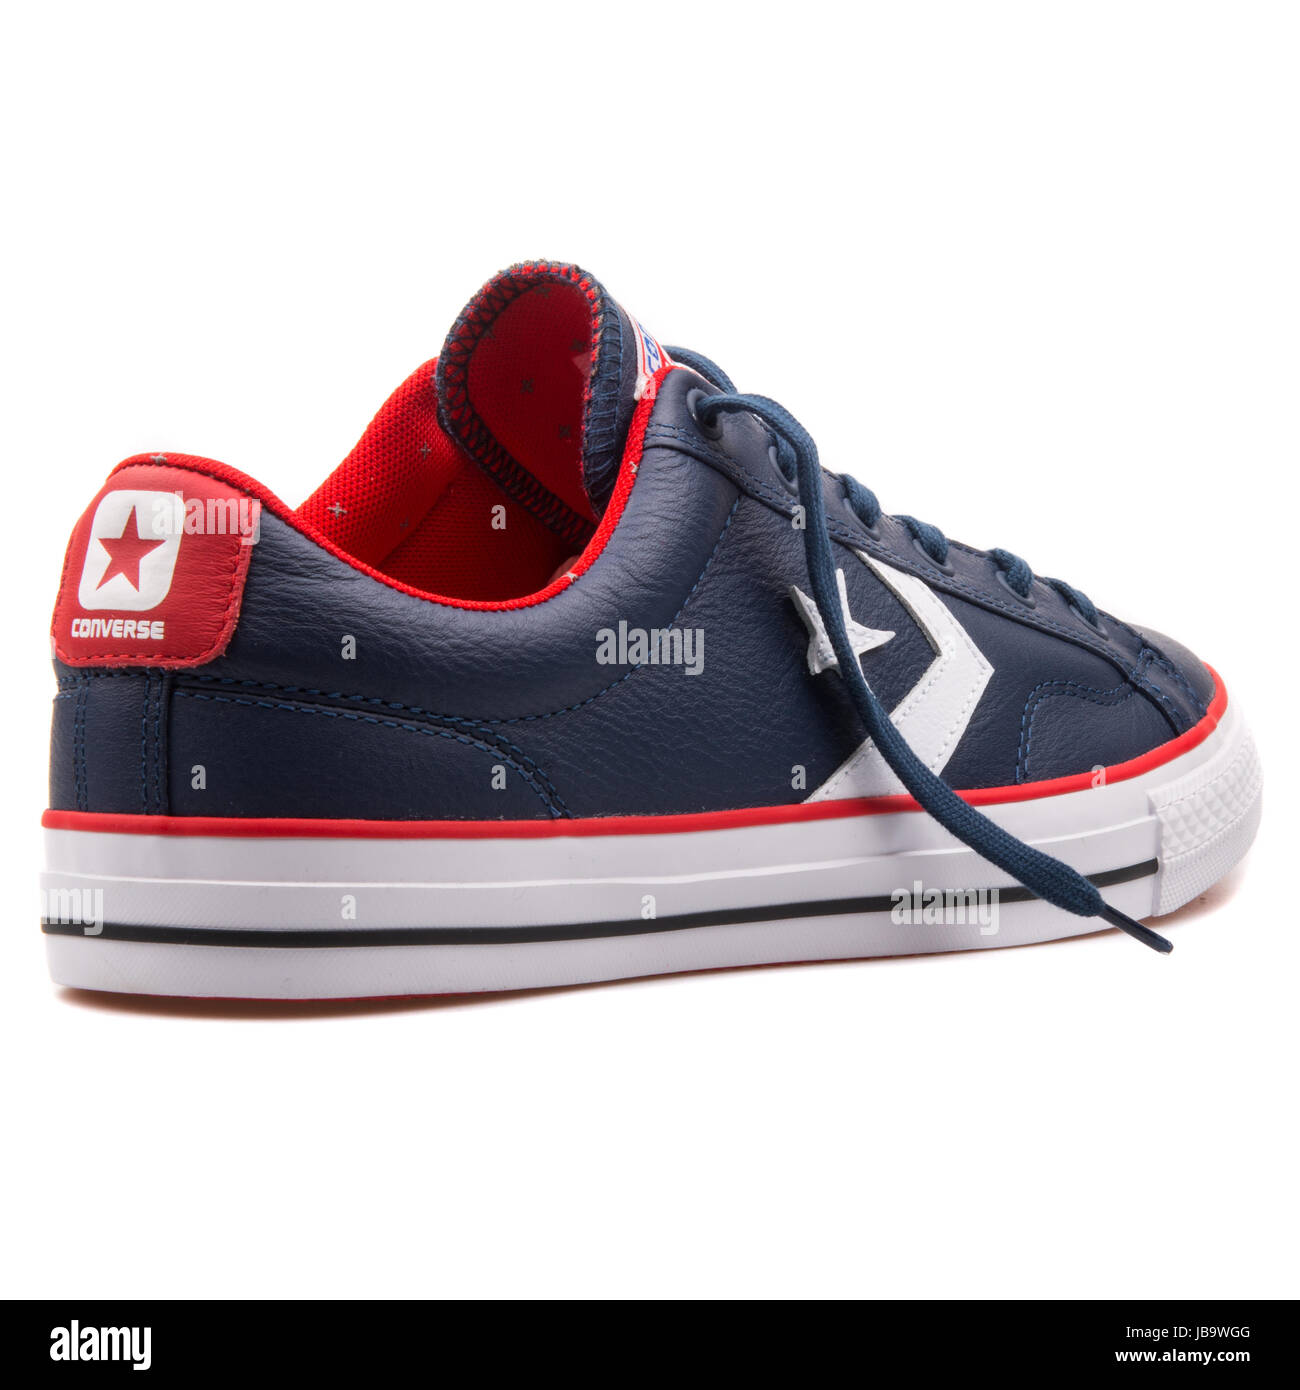 827bffb0849d Converse Chuck Taylor All Star OX rouge et bleu nuit Chaussures unisexe -  149772C